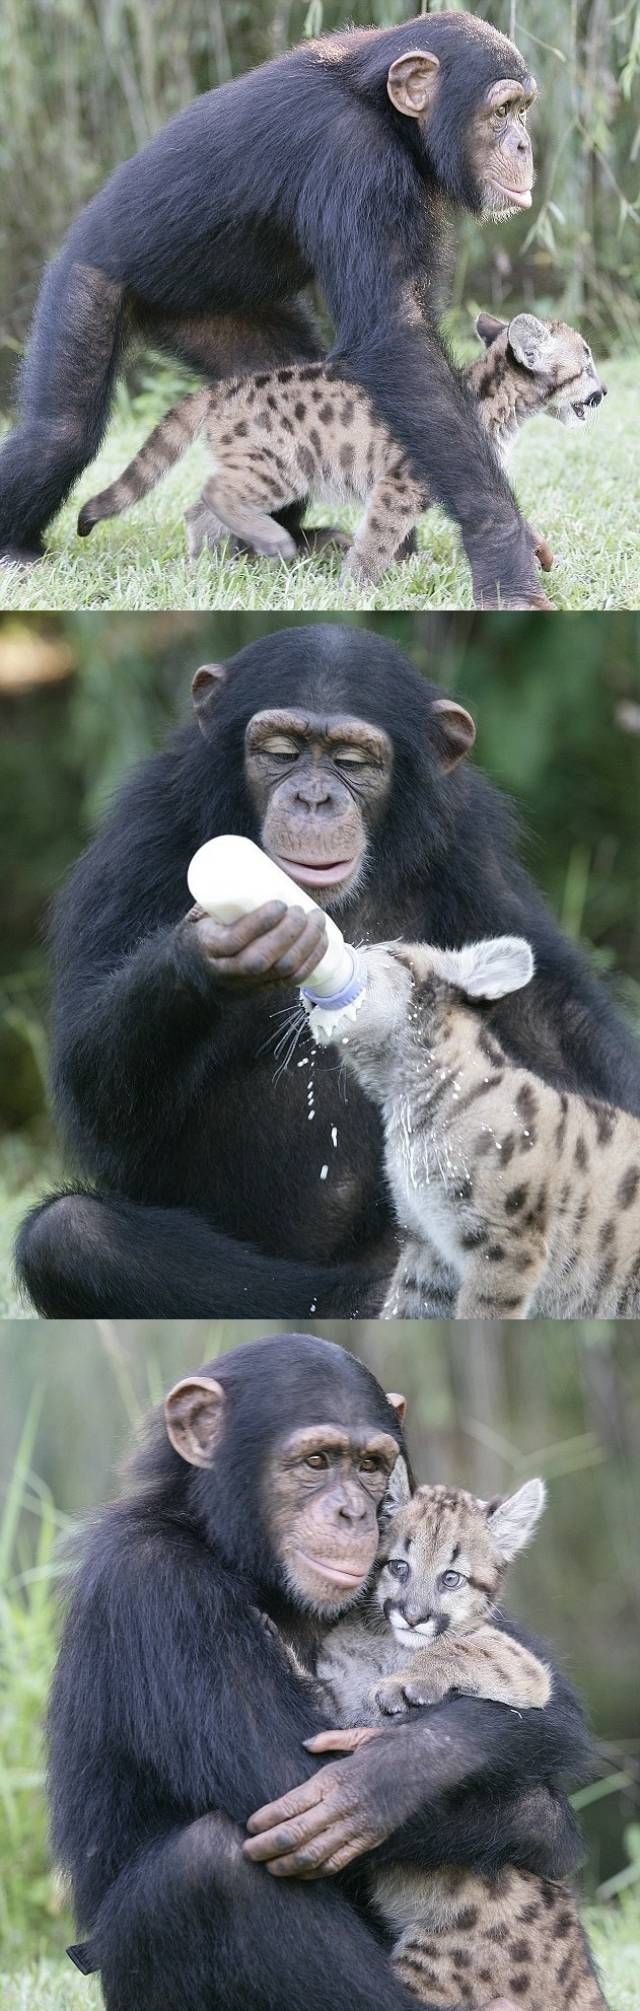 The Most Adorable Animal Friendships